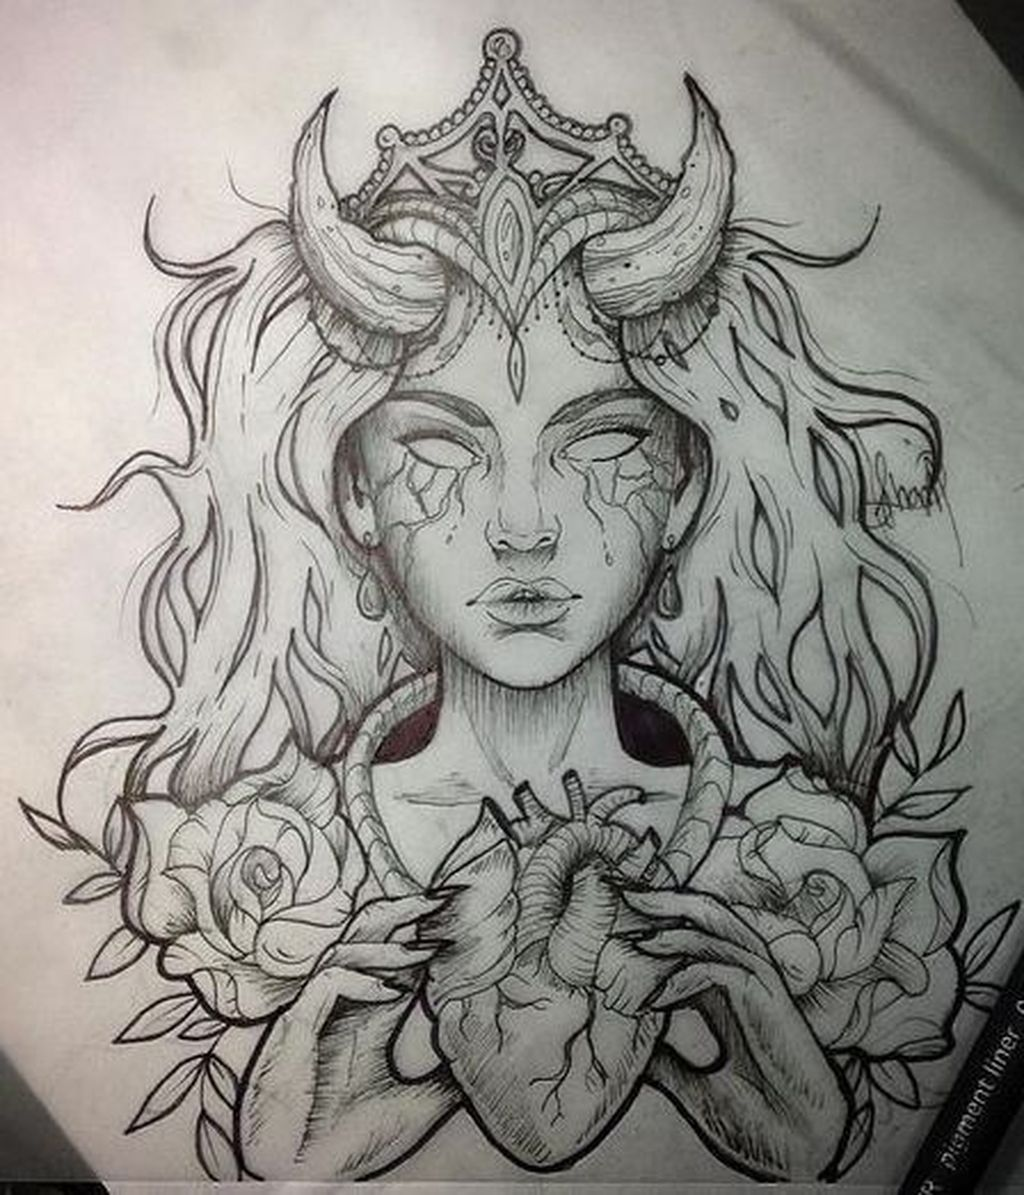 40 Unique Tattoo Drawings Ideas For Your Inspiration In 2020 Tattoo Outline Drawing Graffiti Tattoo Tattoo Drawings